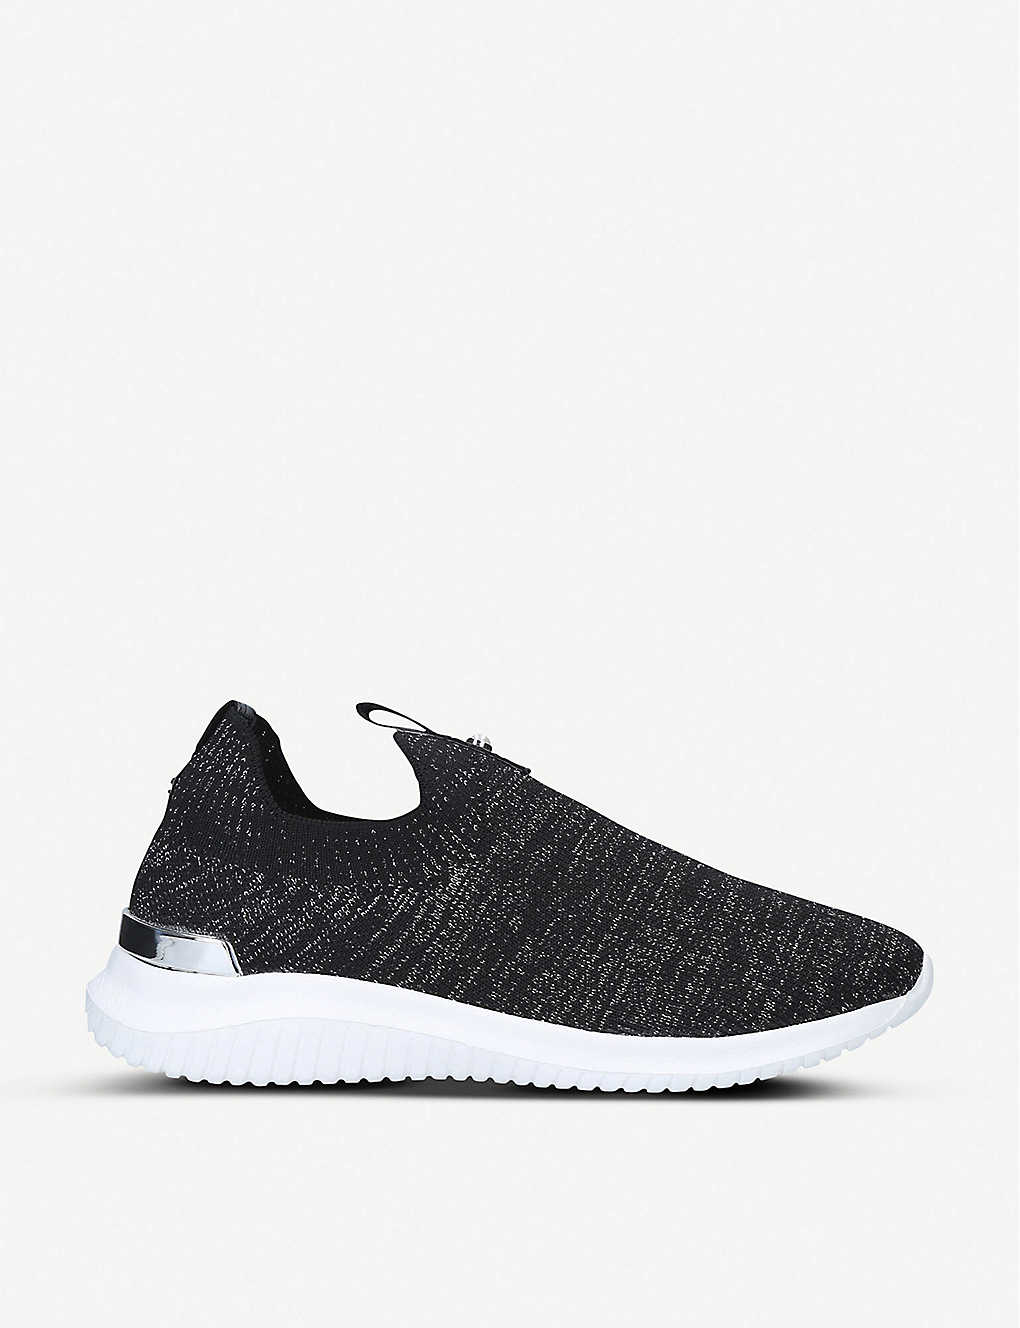 KG KURT GEIGER: Lifted knitted sock trainers